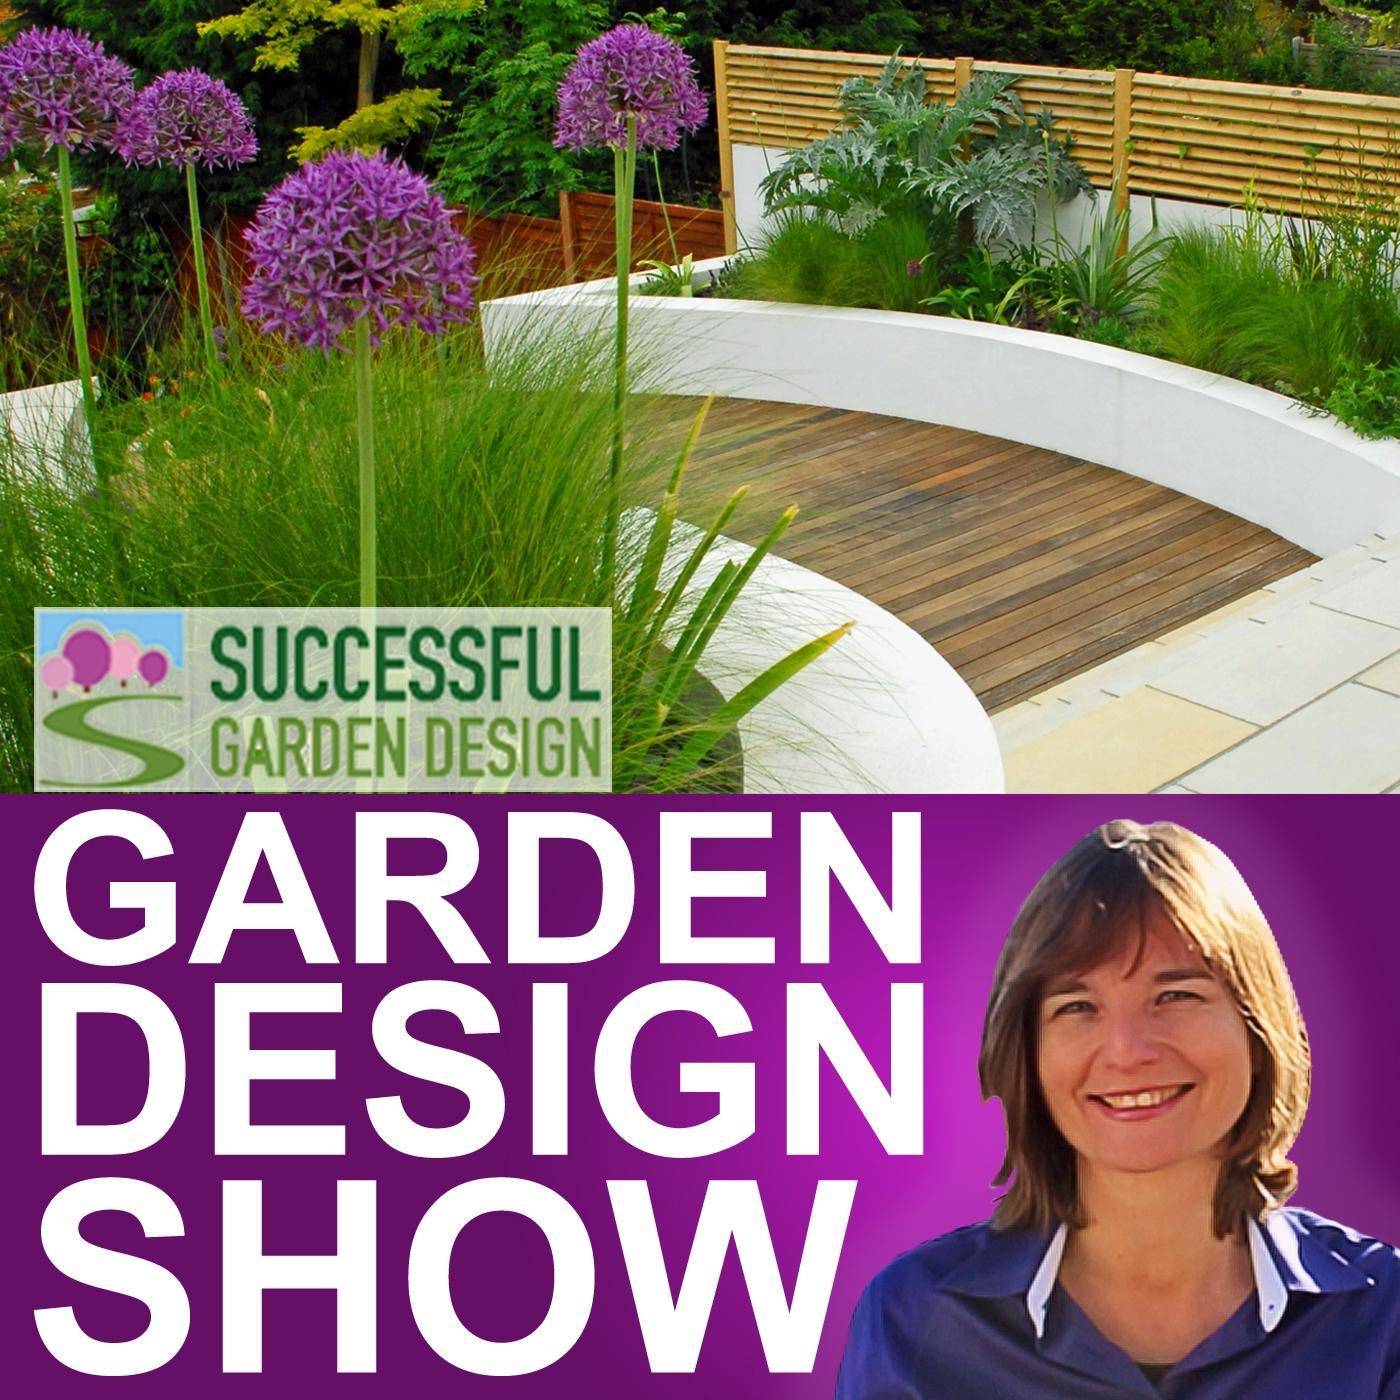 Garden design show listen via stitcher radio on demand for Garden design podcast